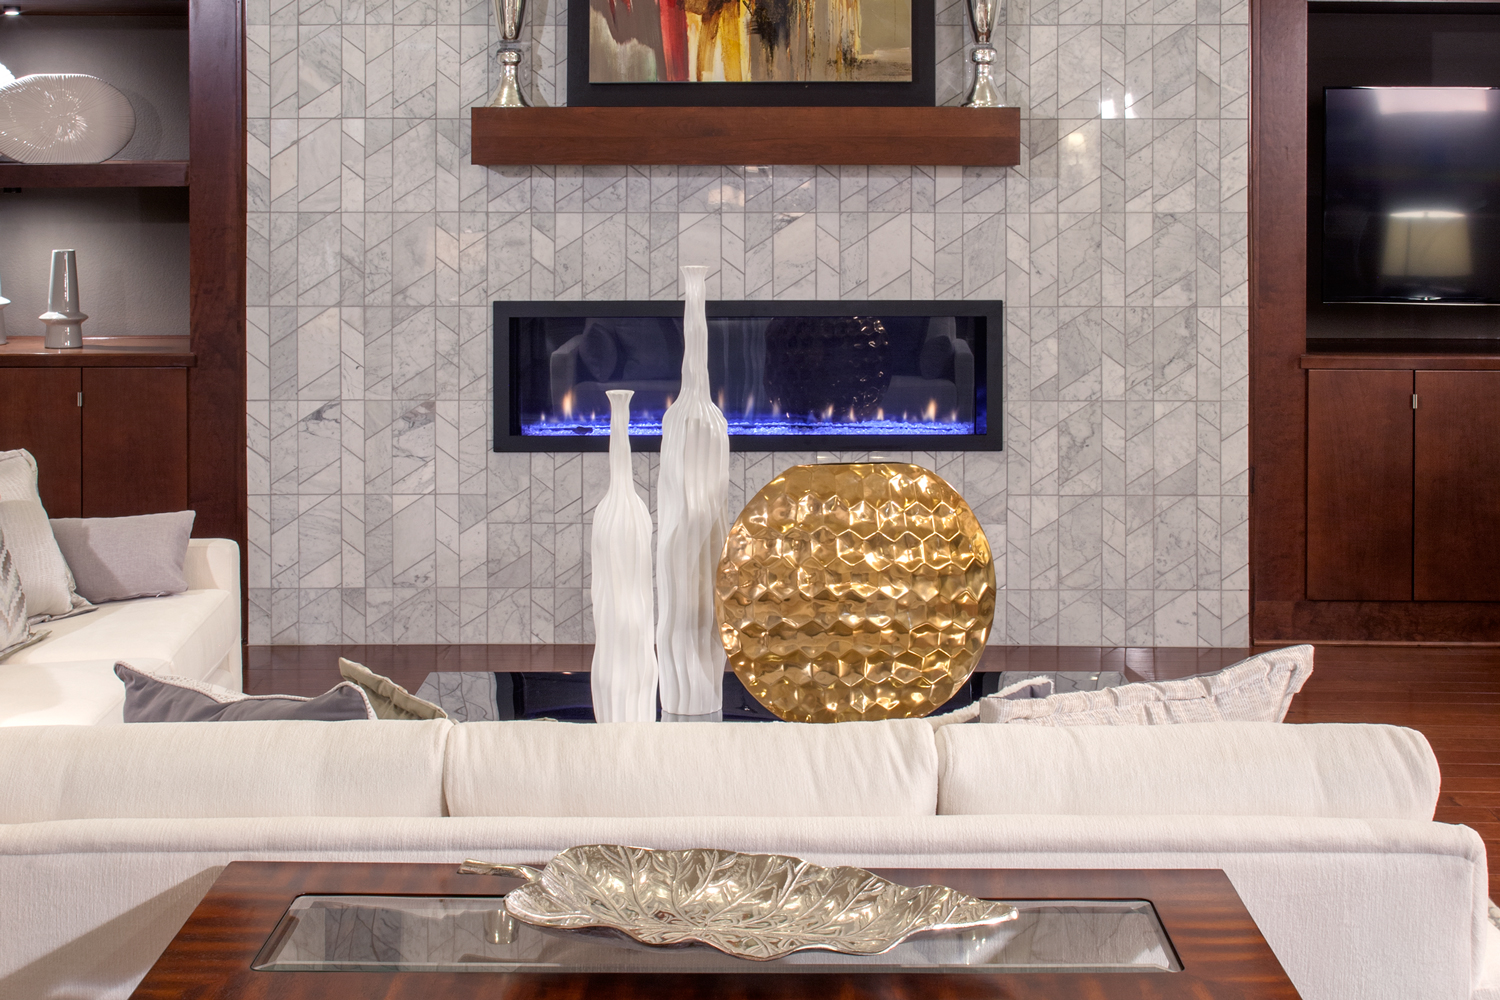 AW ATX Saratoga Hills- Fireplace Vignette Prague- Polished Couture_cropped_2.jpg